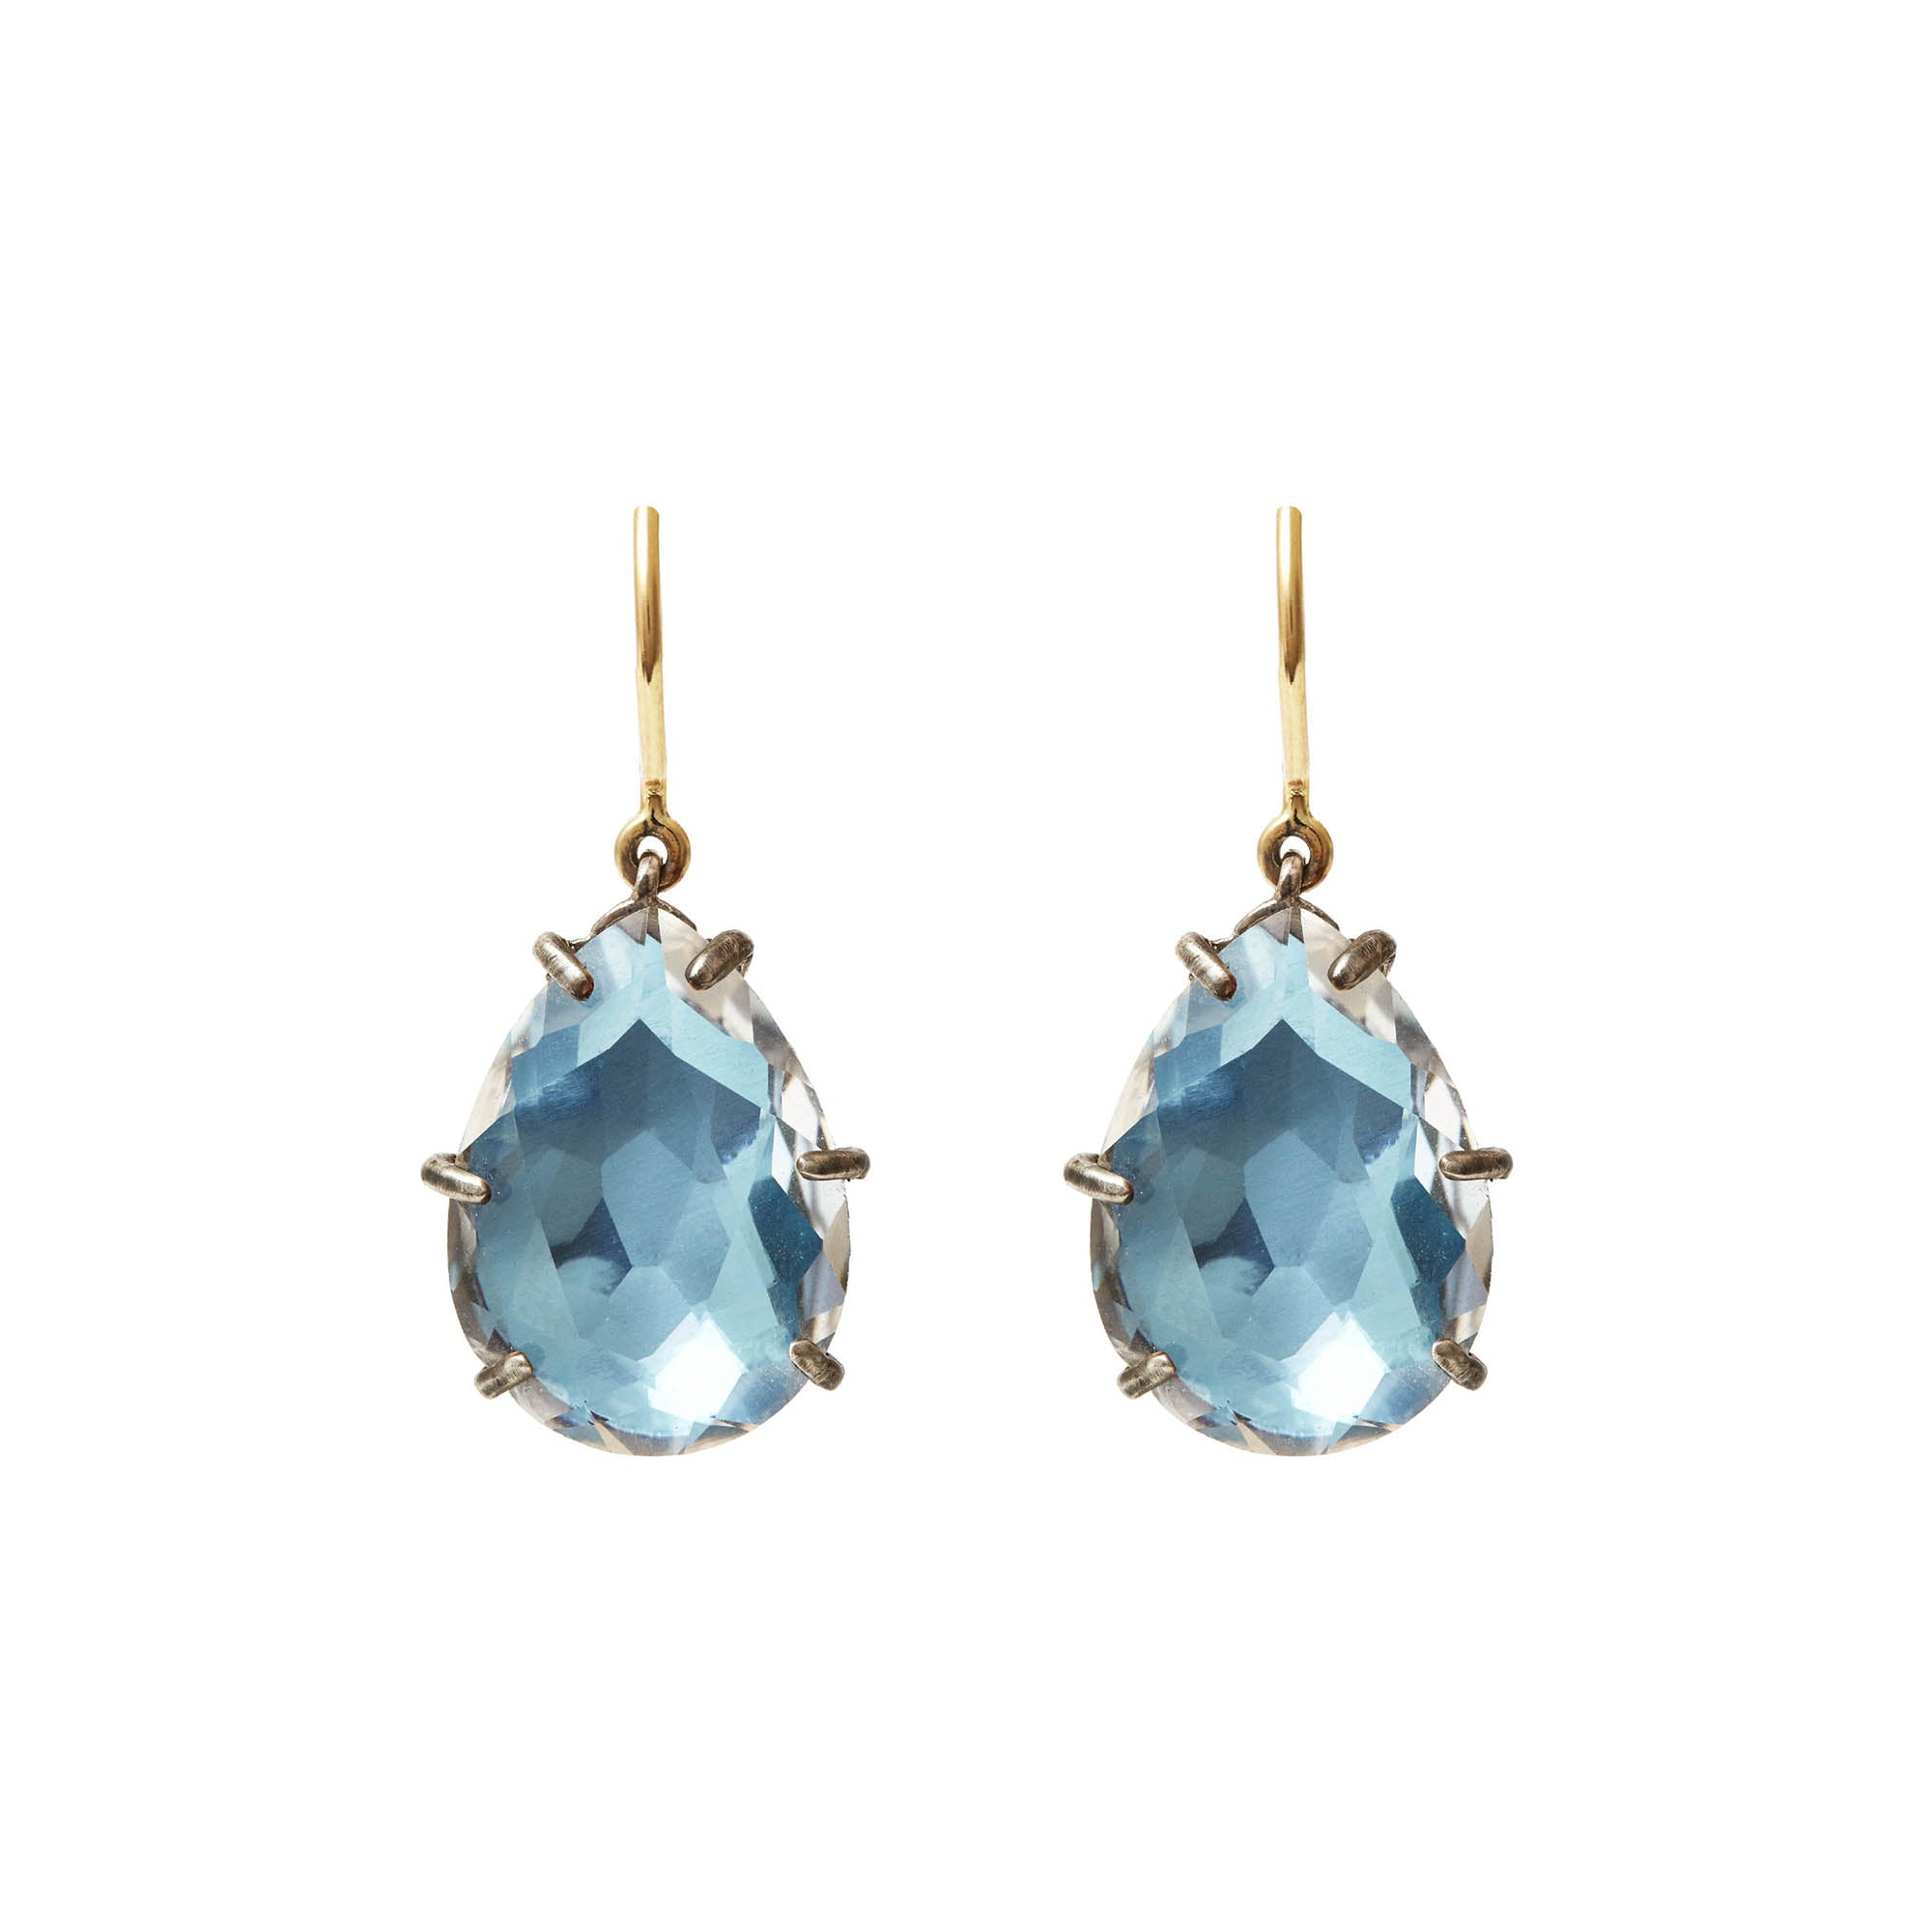 Caterina One-Drop Earrings by Larkspur & Hawk for Broken English Jewelry